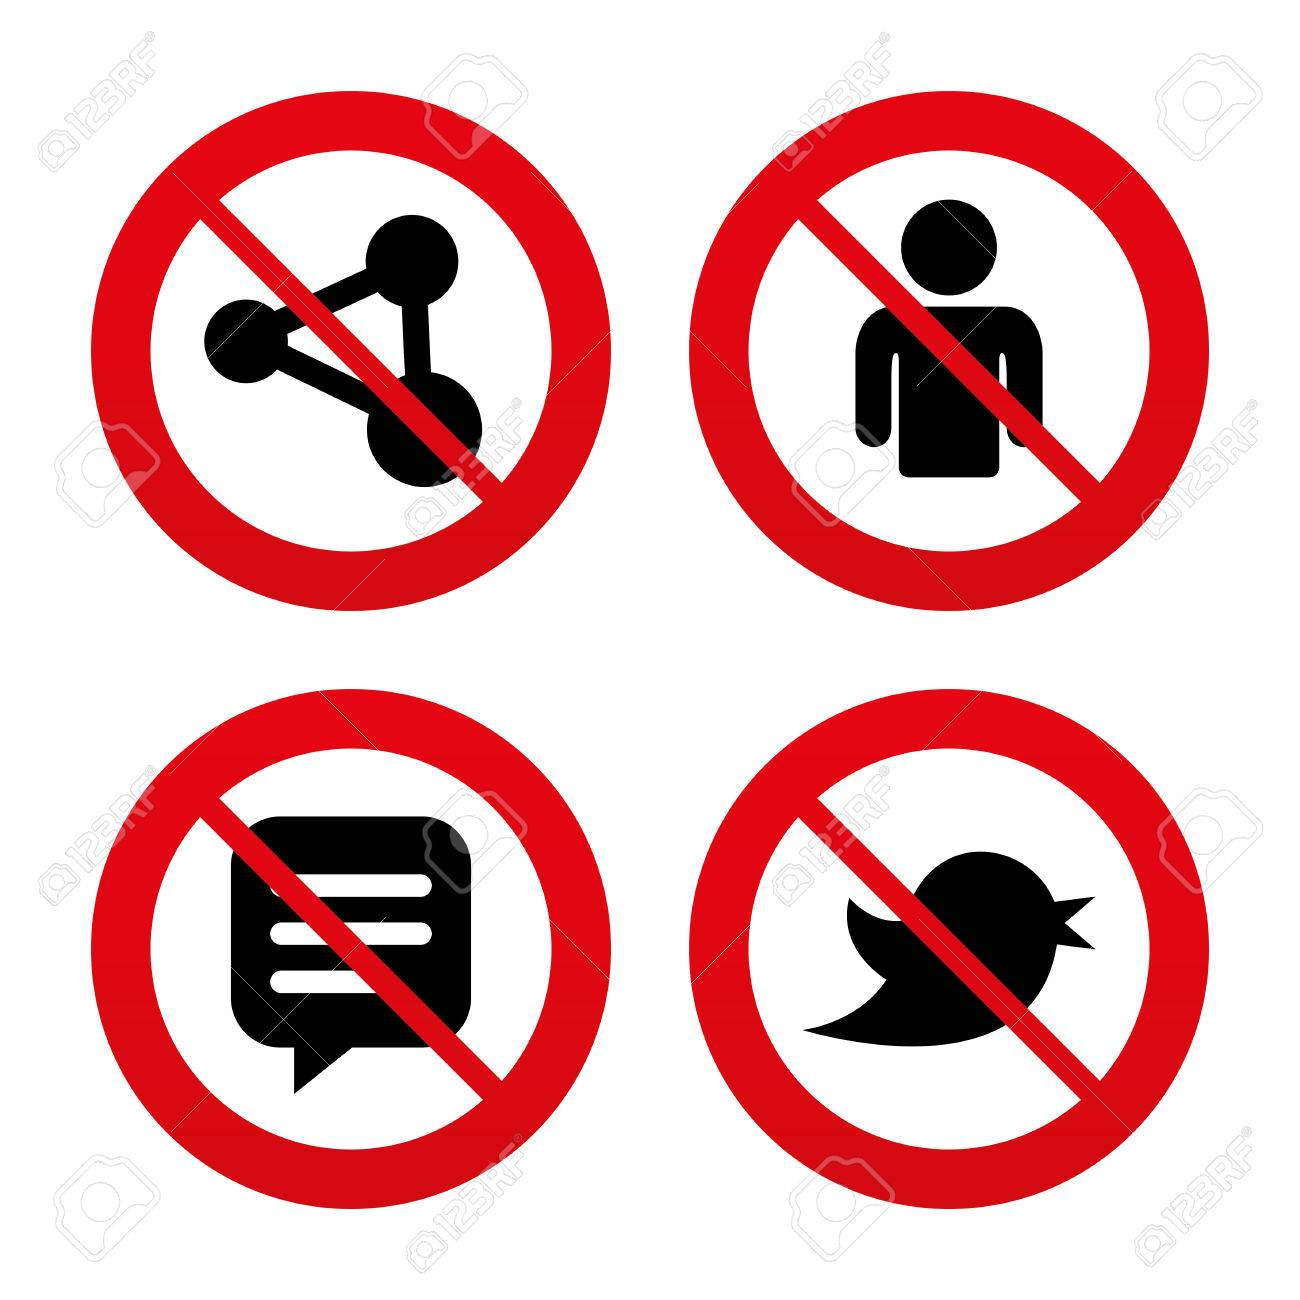 No ban or stop signs human person and share icons speech bubble no ban or stop signs human person and share icons speech bubble symbols biocorpaavc Gallery